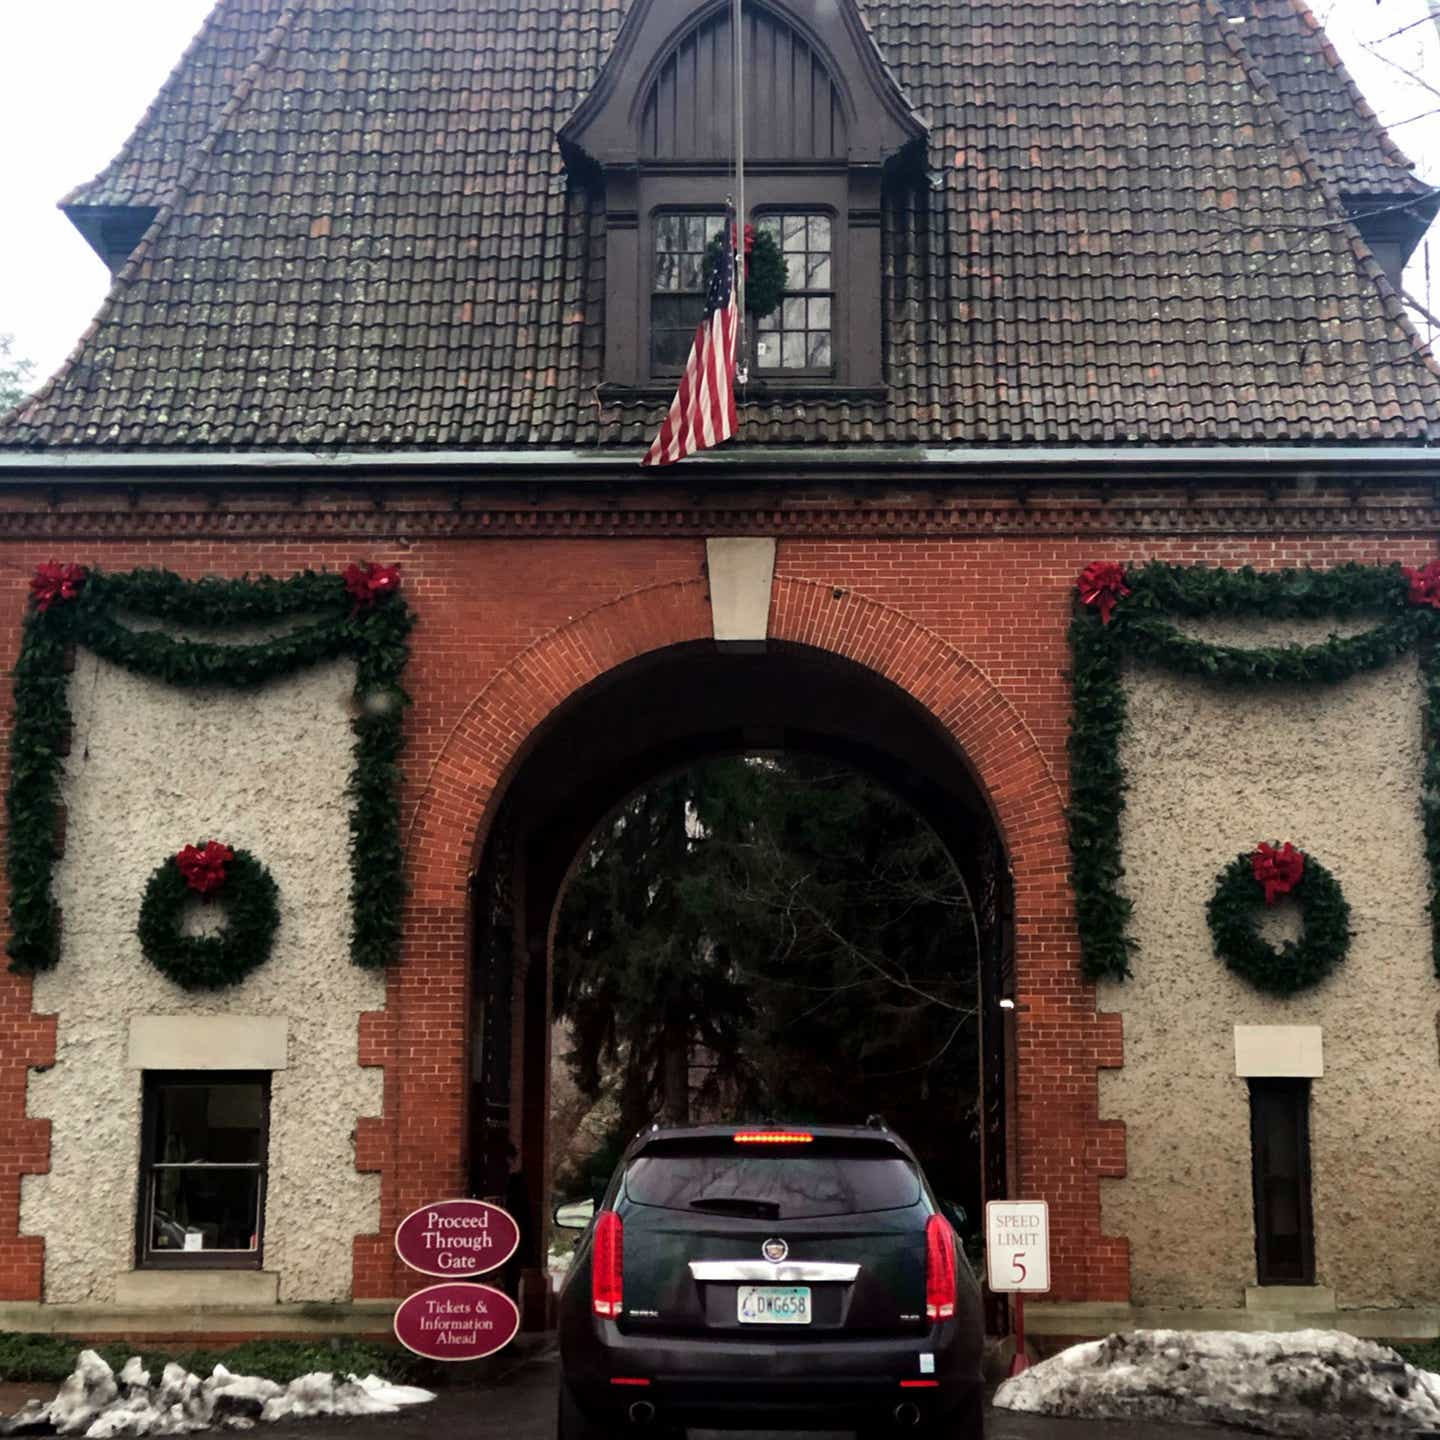 The exterior of the Biltmore Estate entrance under a cloudy sky with lush green garland decorating the facade as a black SUV enters.